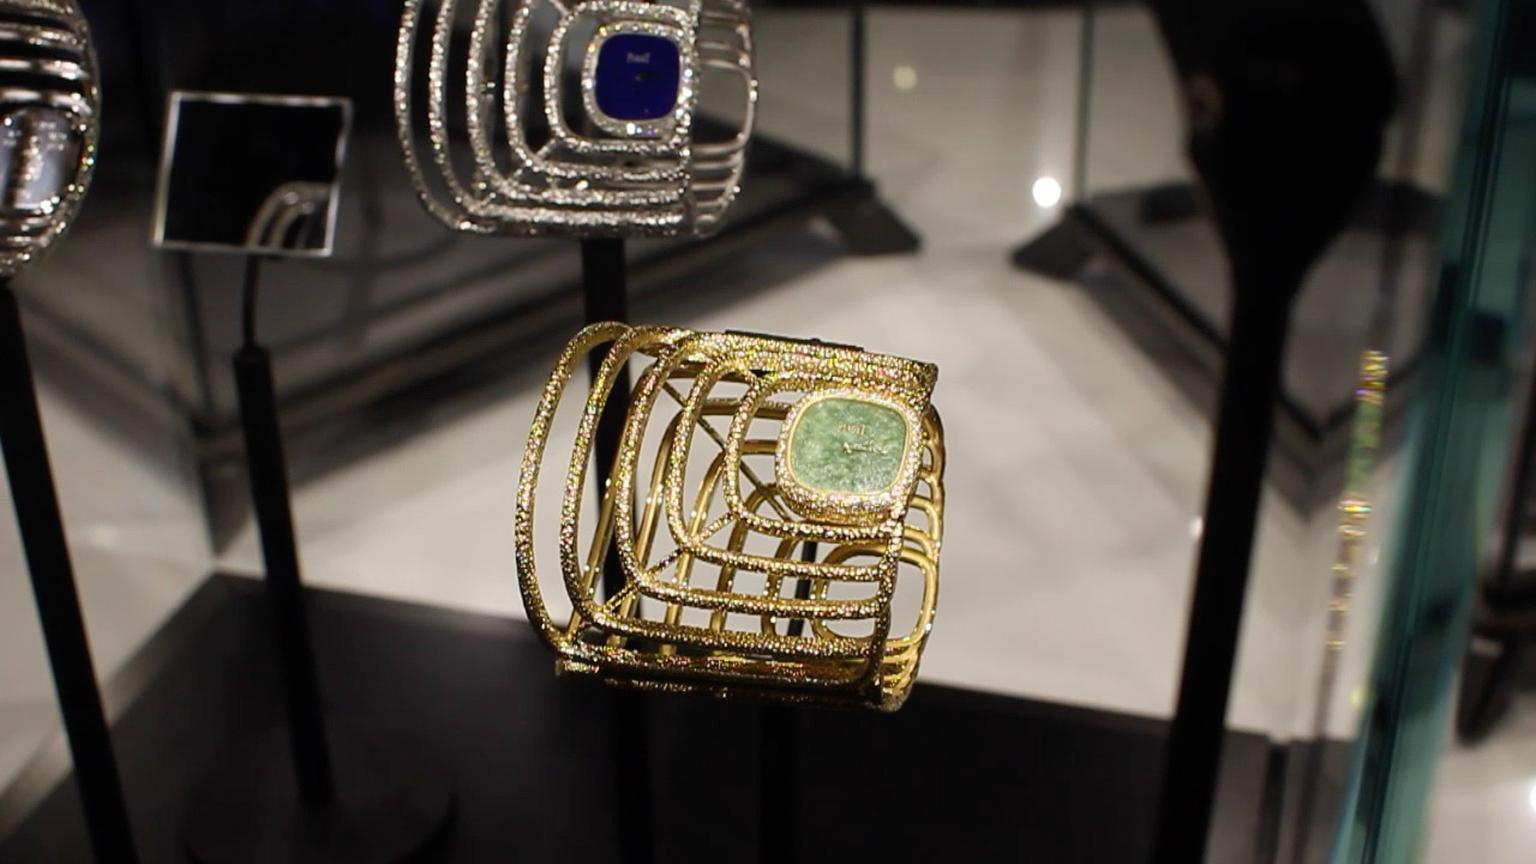 Extremely Piaget Cuff watch with a natural jade dial features hammered yellow gold, set with brilliant-cut diamonds, bringing together Piaget's jewellery and time keeping prowess in a beautiful high jewellery watch.